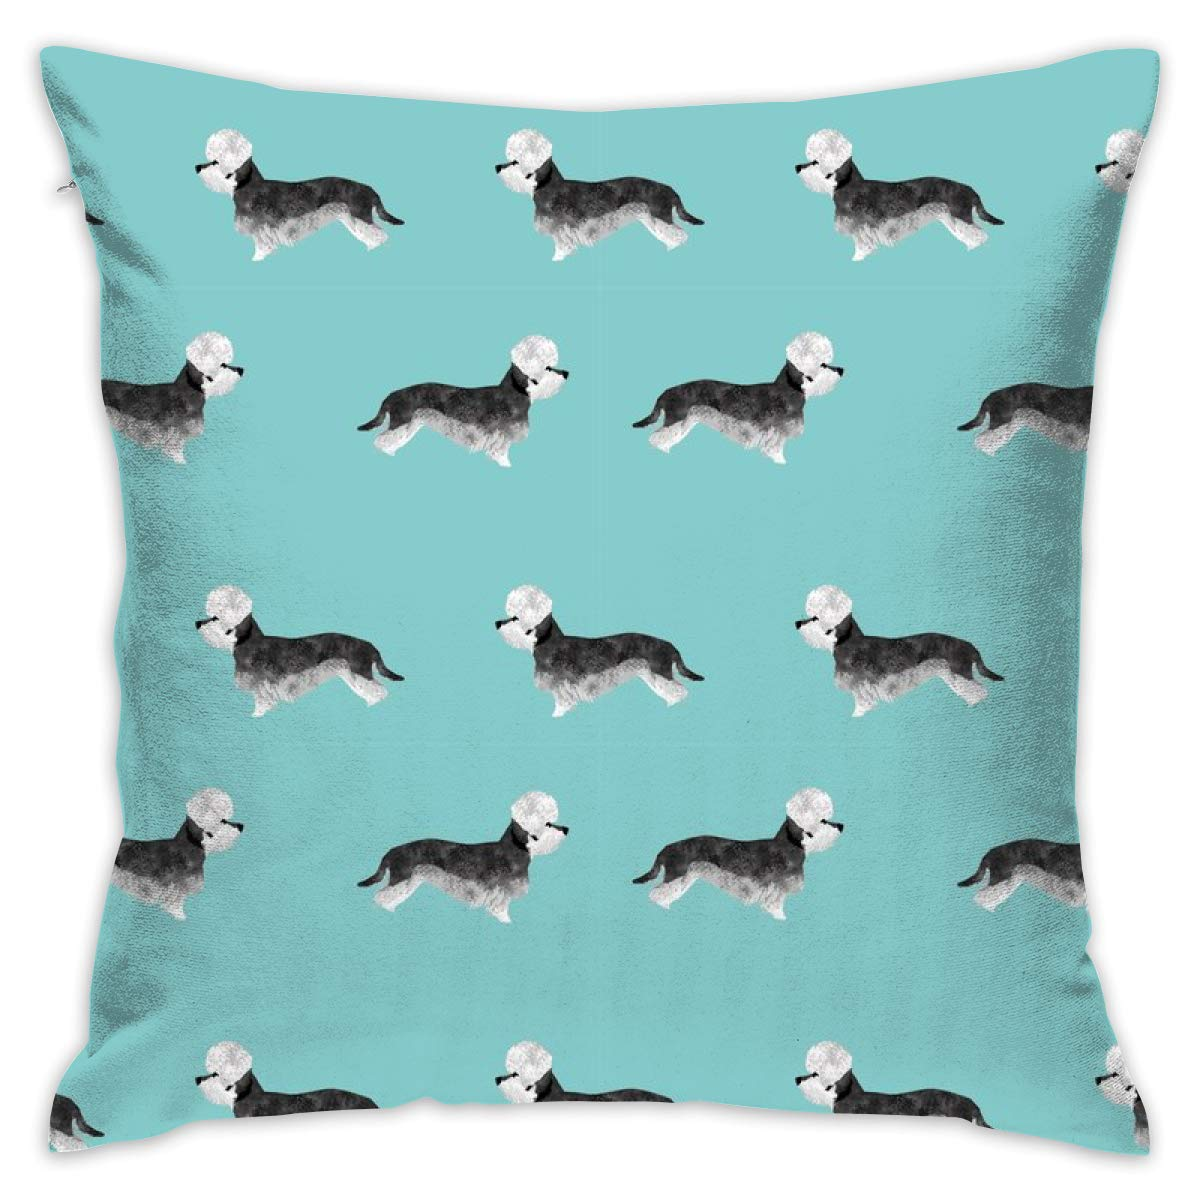 Mabell Beautifully decorated home Dandie Dinmont Terrier – Pepper Dog Coat, Dandie Dinmont Dog, Terrier Dog, Dog Breed – Blue Throw Pillow Case 18X18 Inches